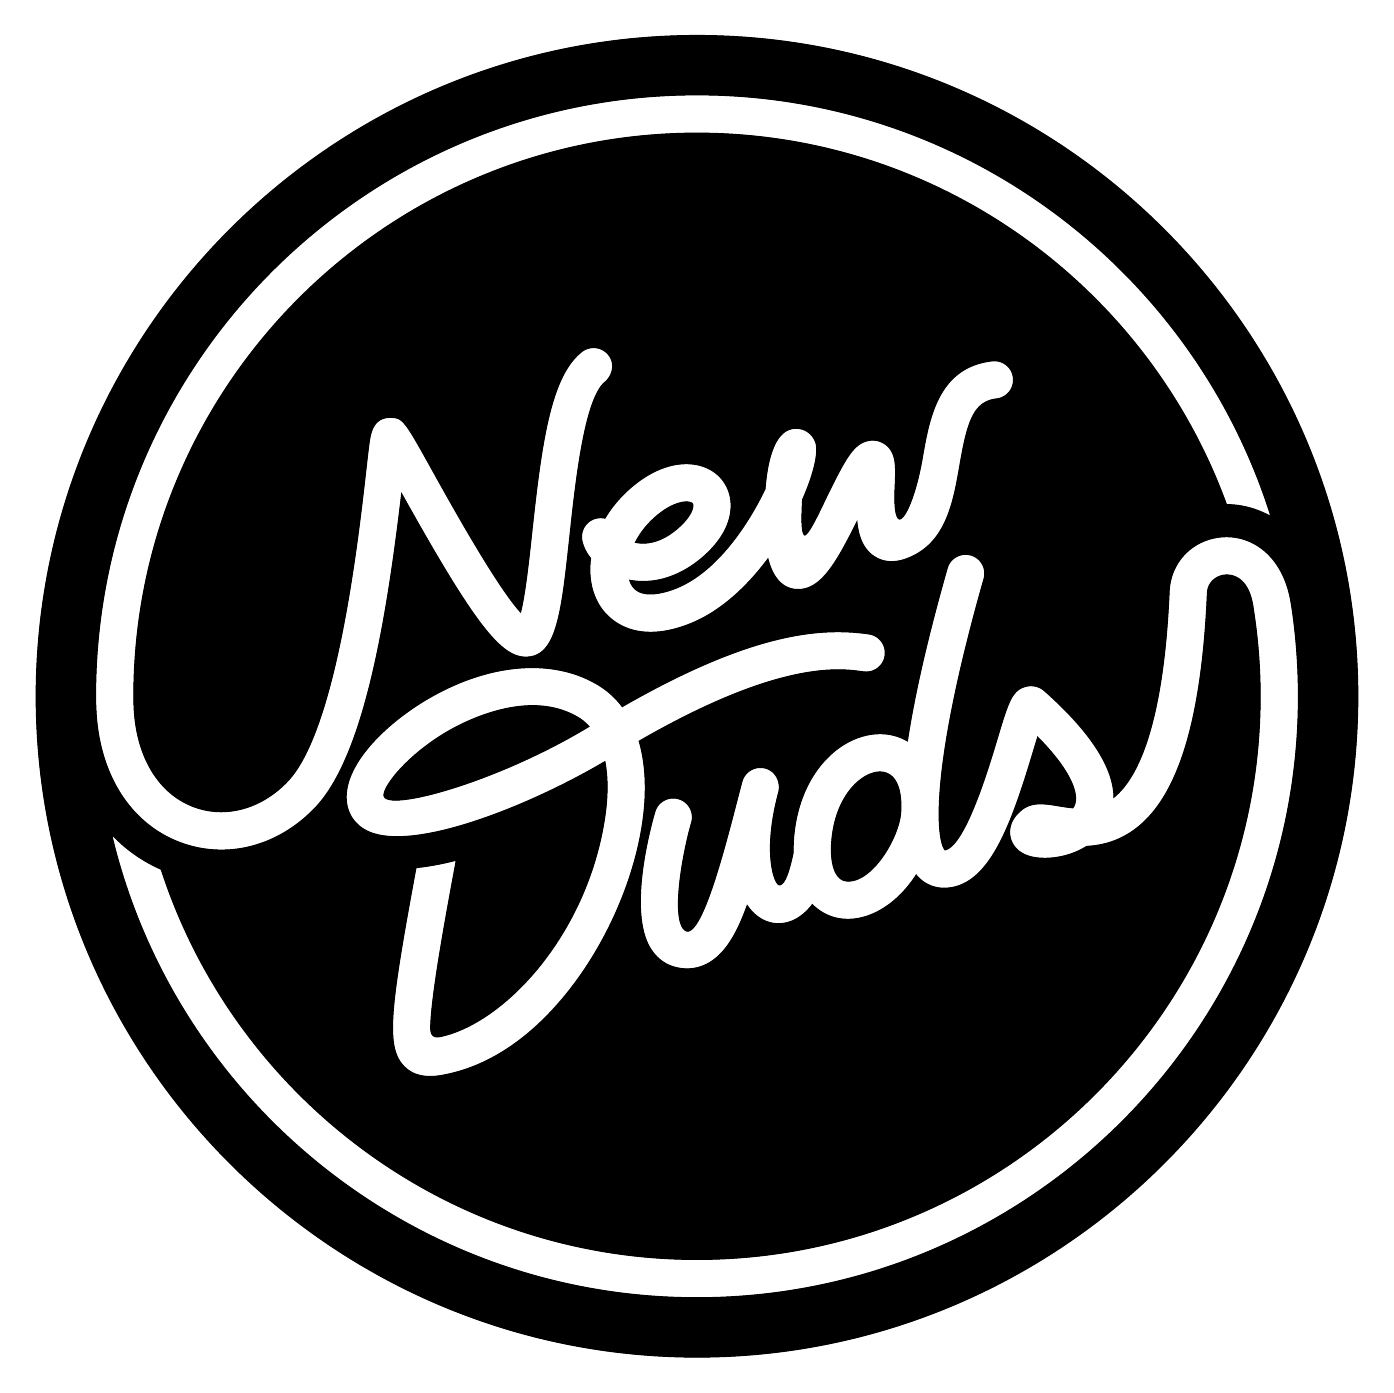 NEW DUDS | SCREEN PRINTING & EMBROIDERY